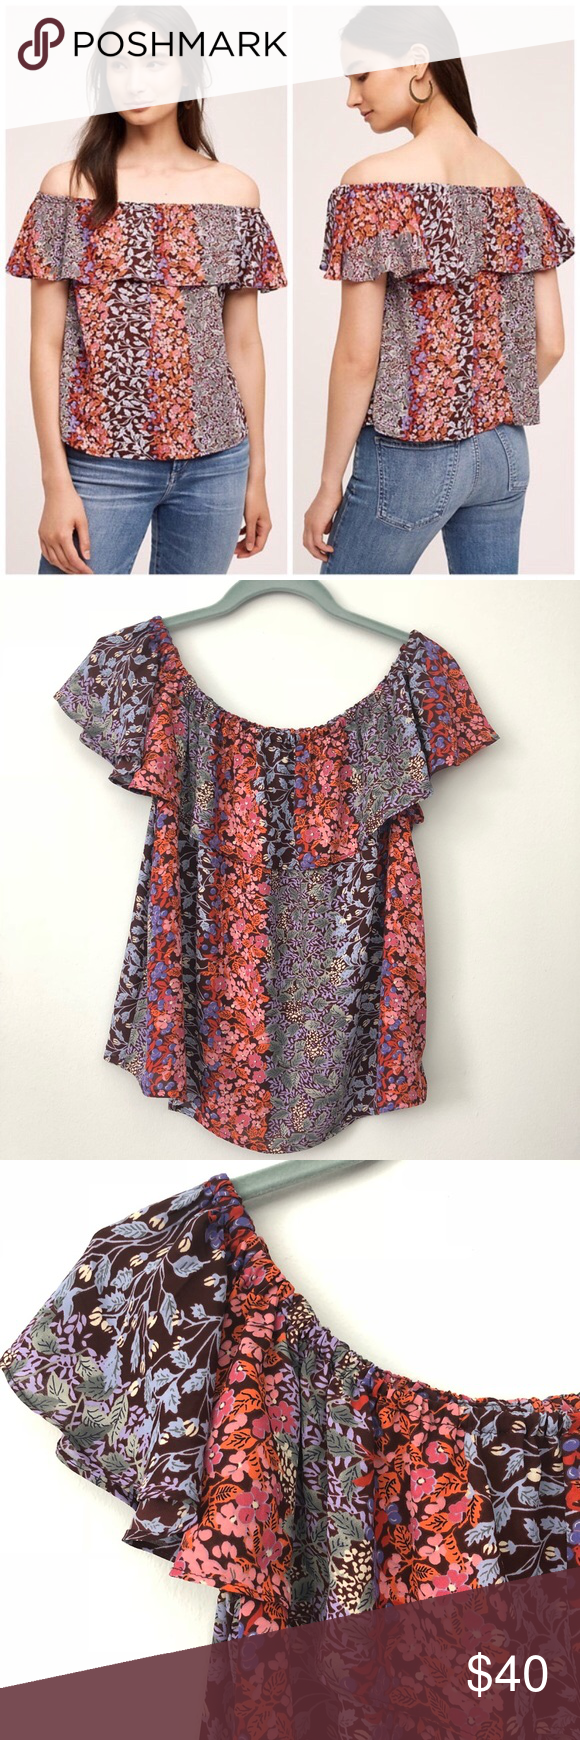 05791e91c6cb4 Anthropologie Maeve Floral Off-Shoulder Blouse Anthropologie Maeve Floral  Off-Shoulder Blouse. Beautiful floral print top with off the shoulder  ruffle.